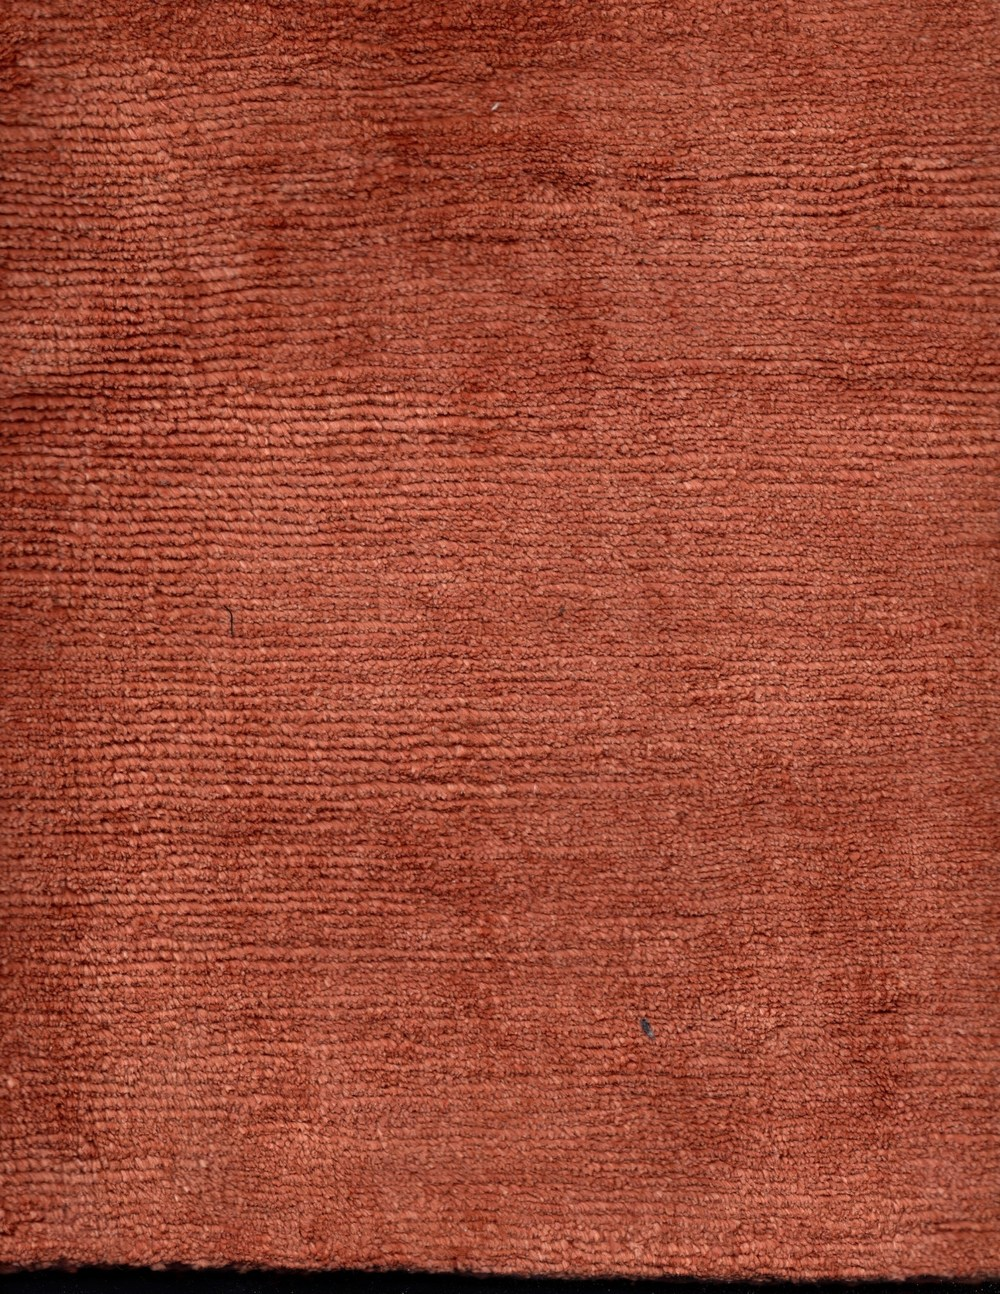 Burnt Orange - Linen - 24858